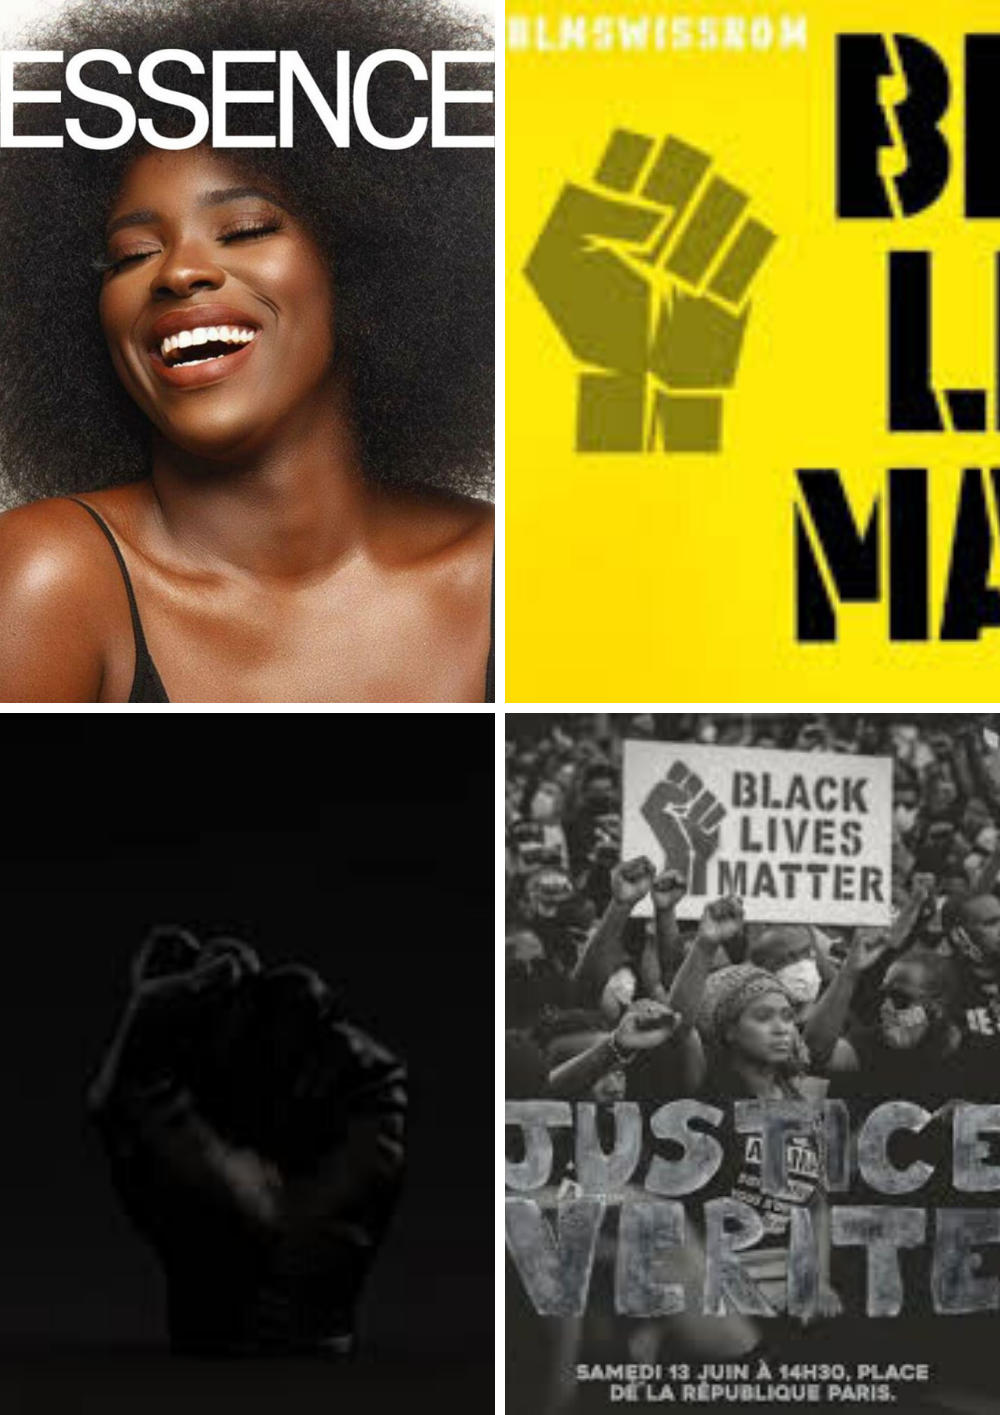 blm Black lives matter , black out tuesday, generation adama essence